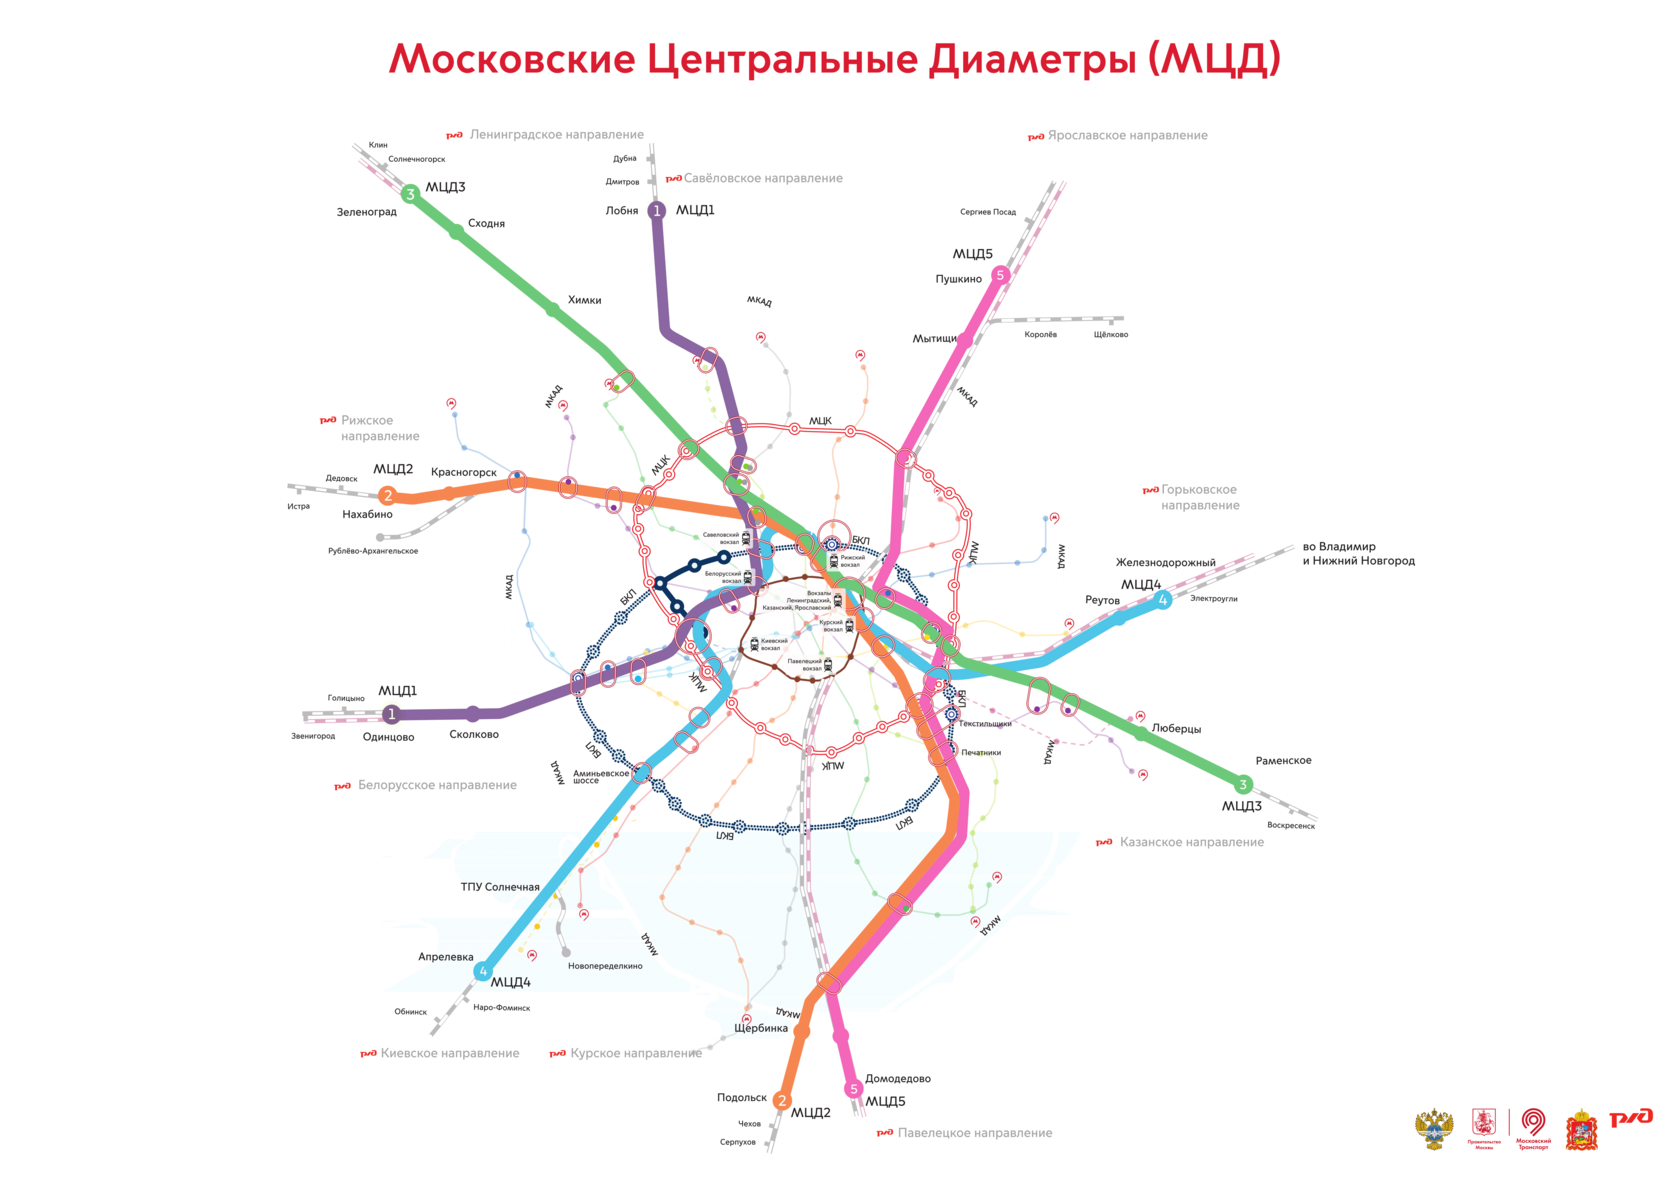 Moscow_Central_Diameters_2019.png